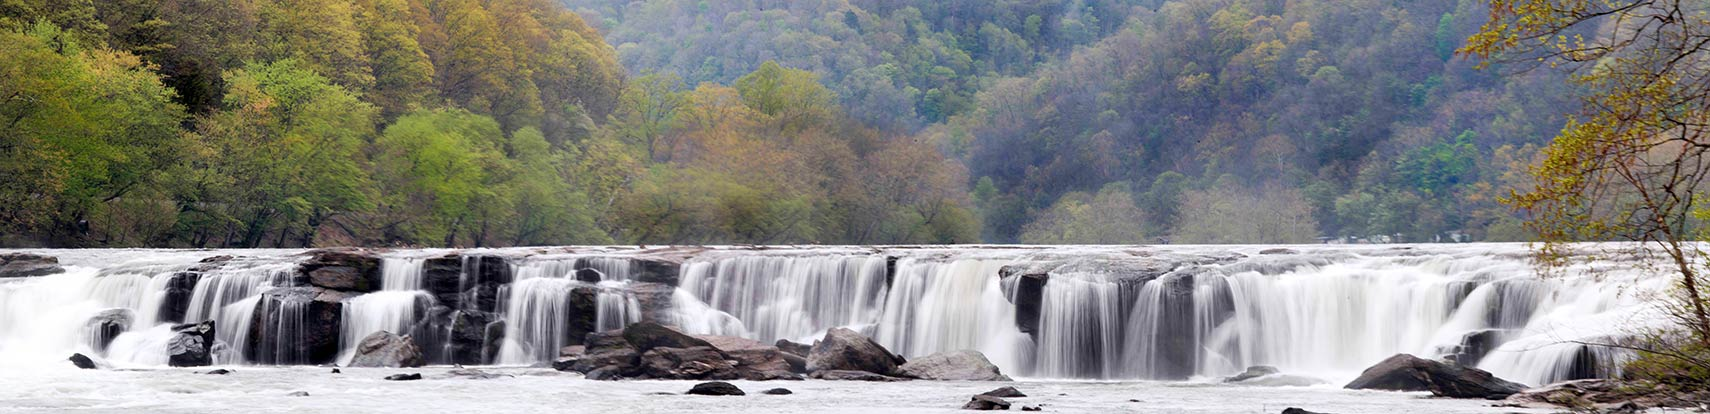 New River Sandstone Falls in Summers County, West Virginia